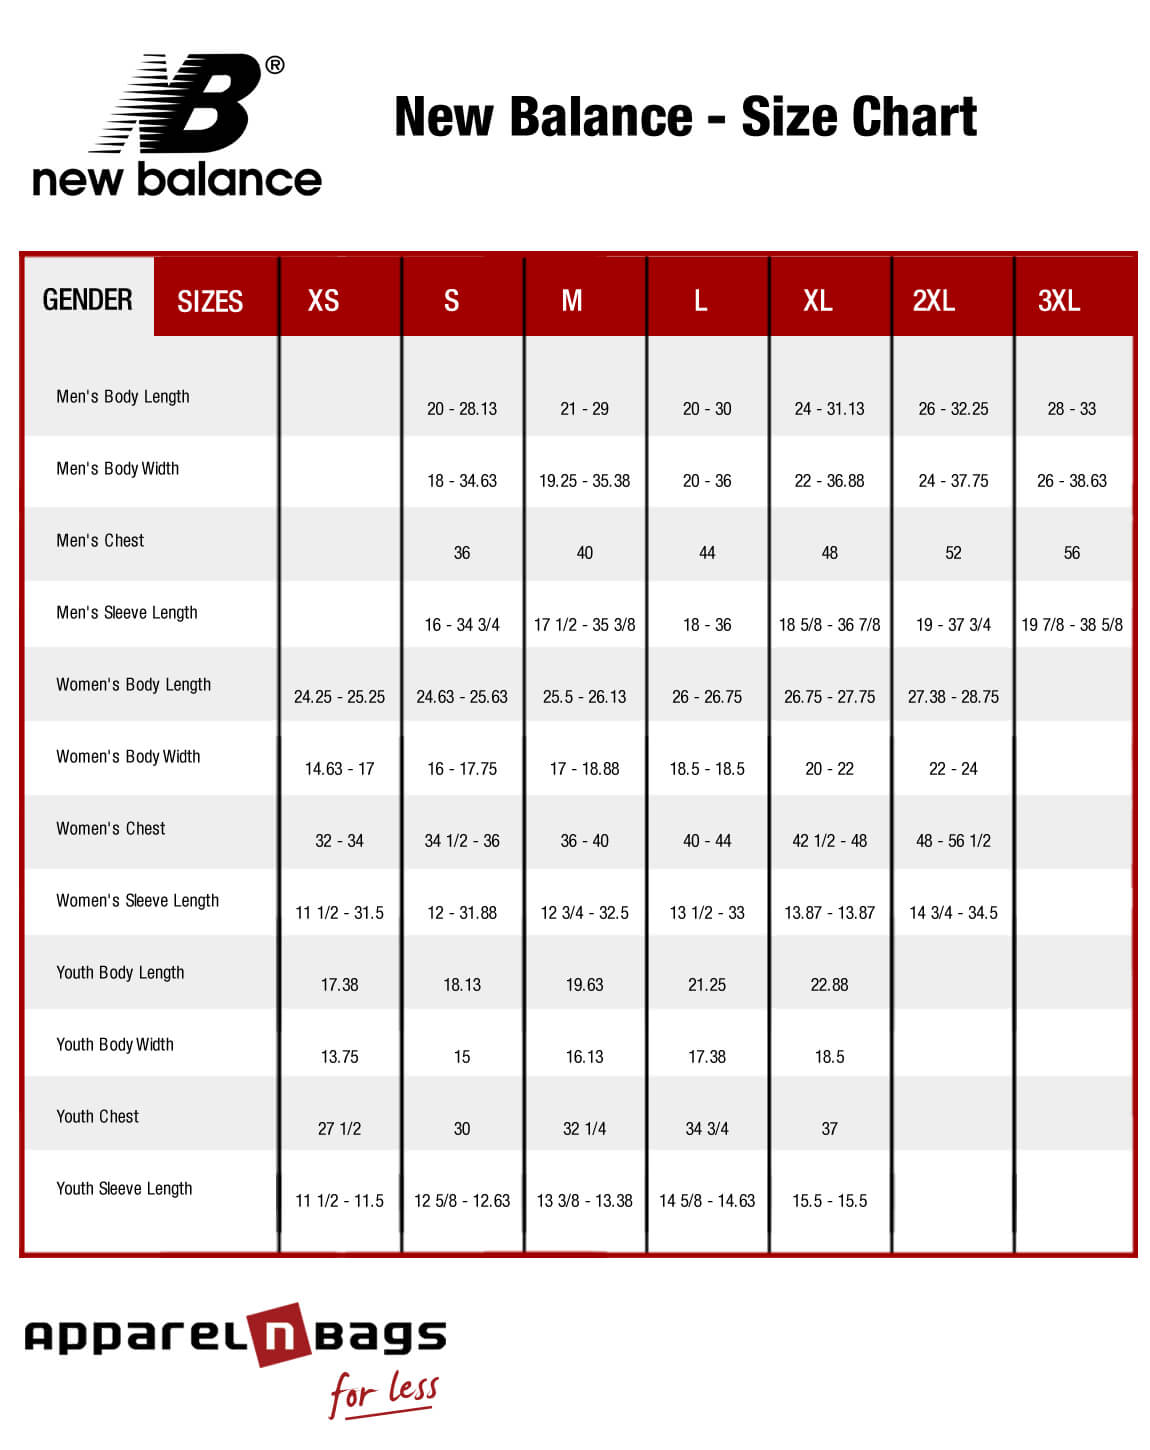 New balance clothing size chart and online fit guide new balance size chart nvjuhfo Choice Image